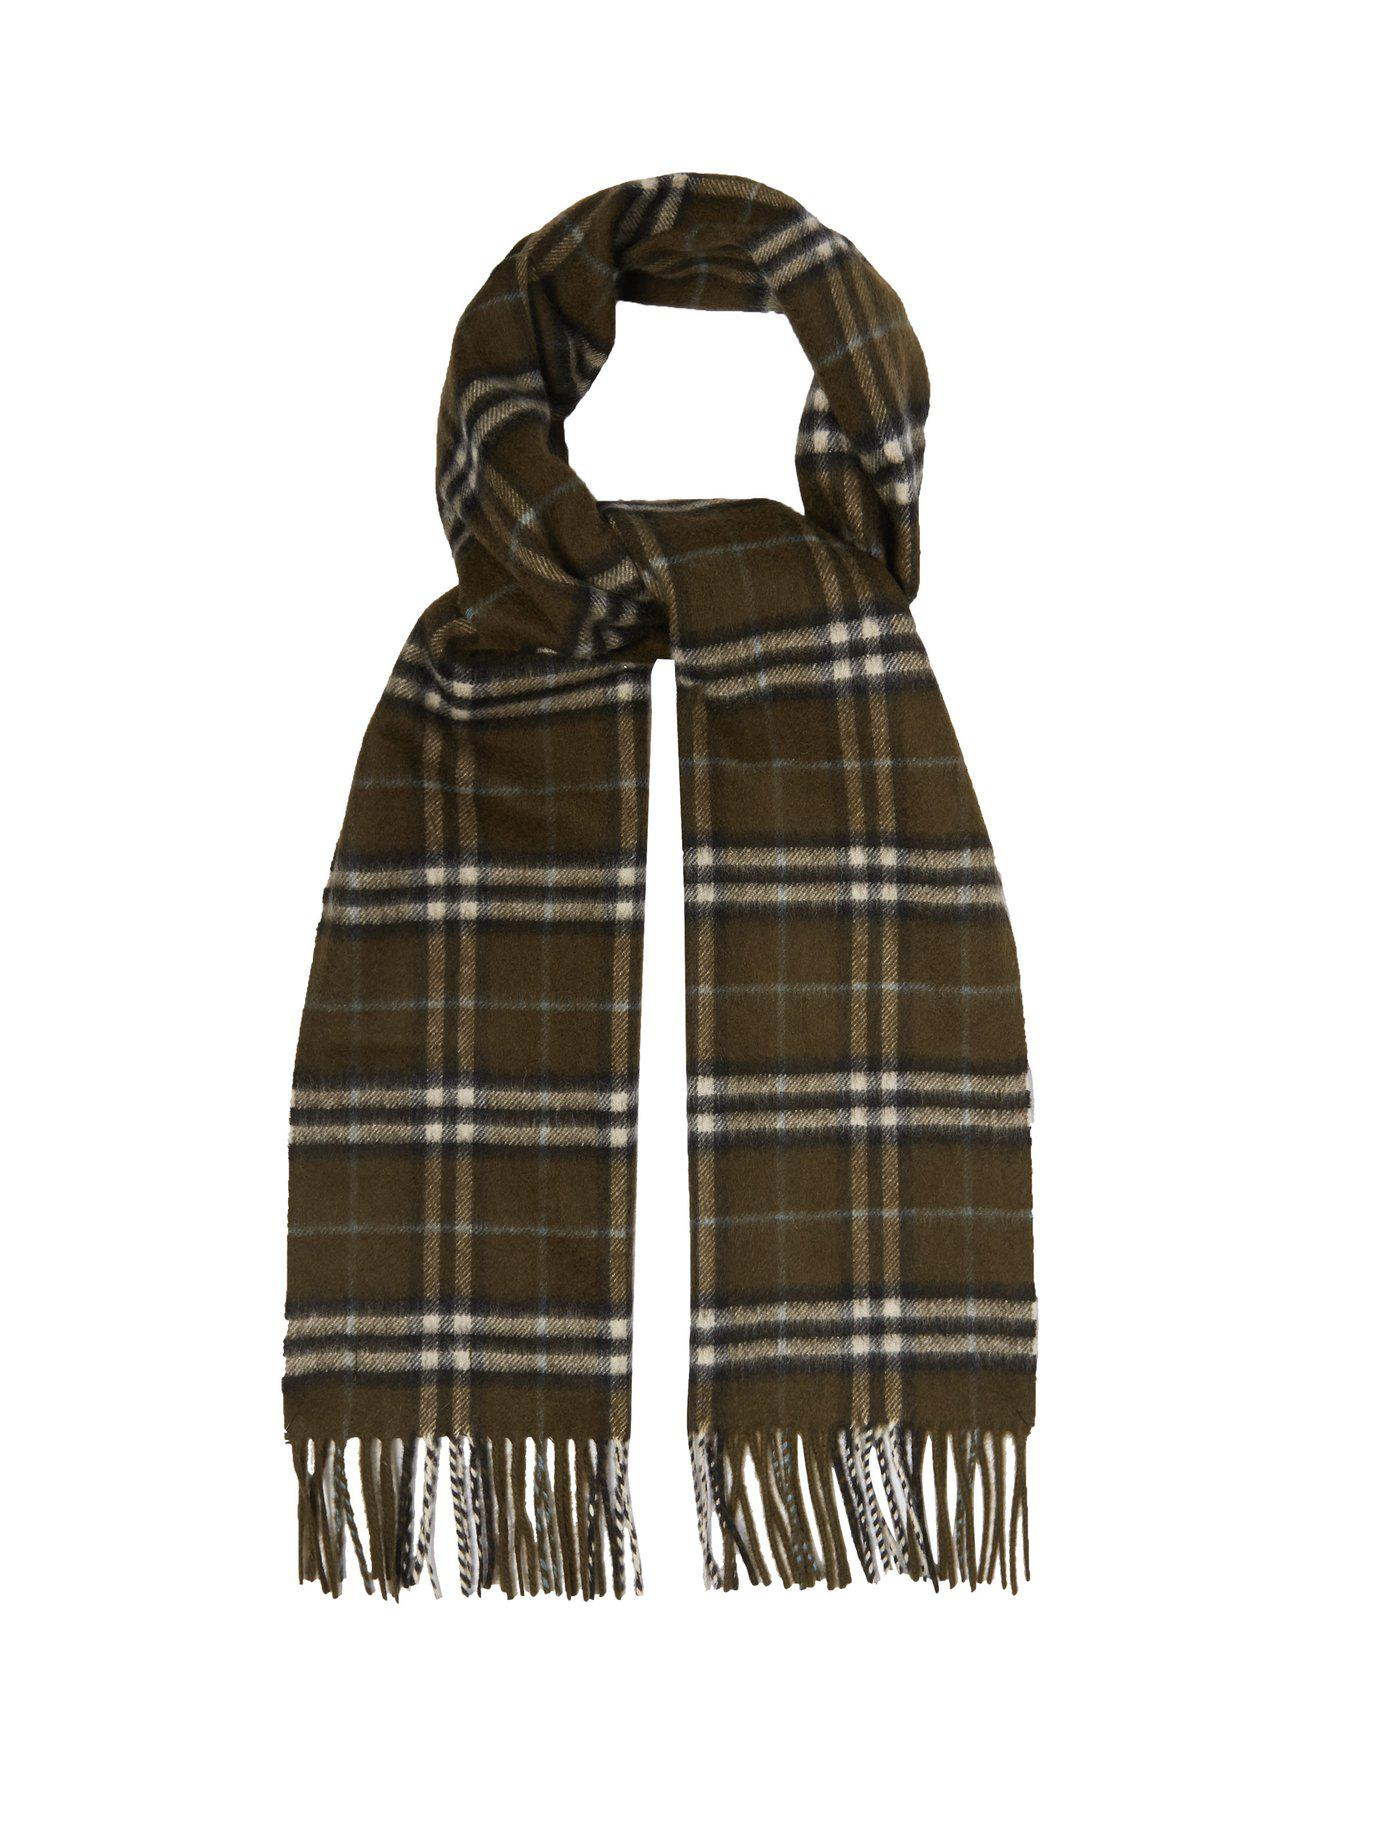 71c91a9ef9a6 Lyst - Burberry Vintage Check Cashmere Scarf in Brown for Men